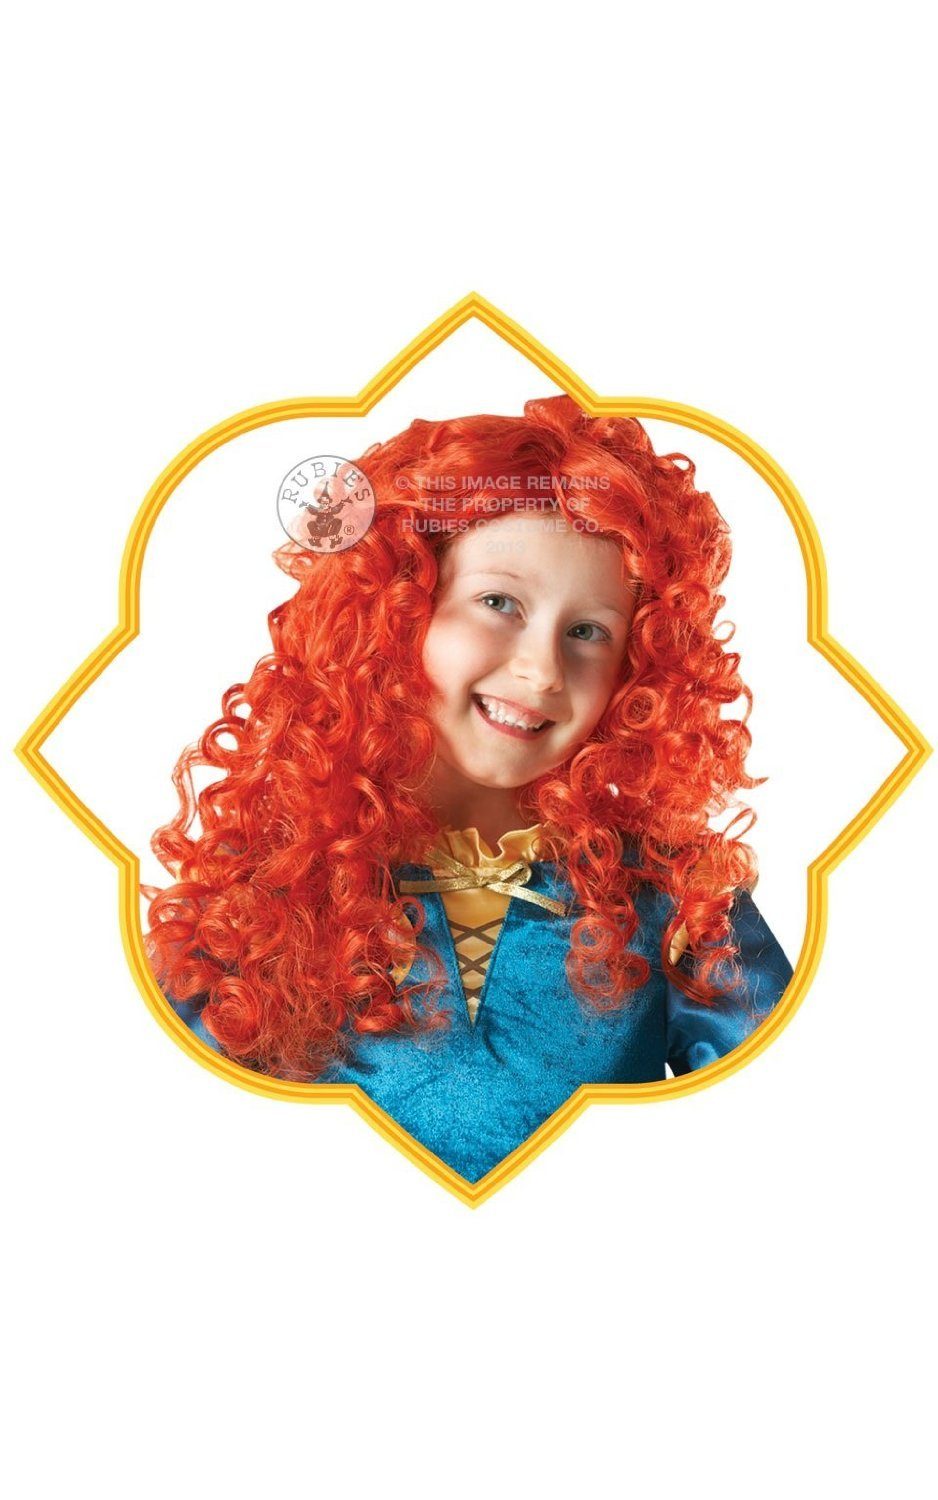 Merida dress images